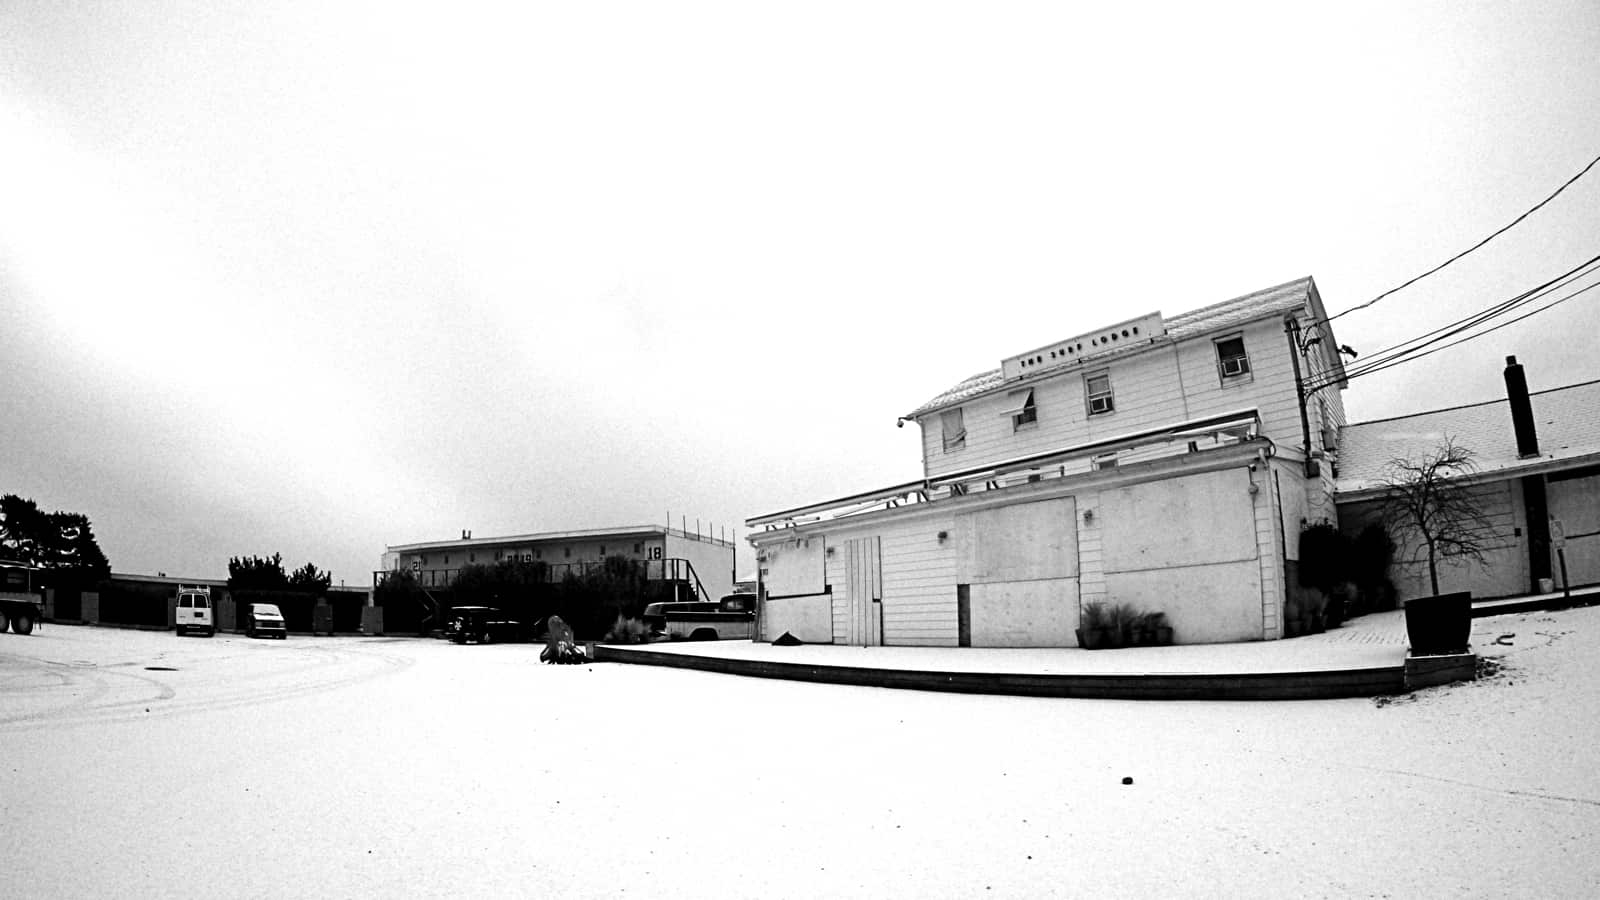 White snow covers white sand in the Surf Lodge parking lot, Montauk NY, photo by Sailing Montauk